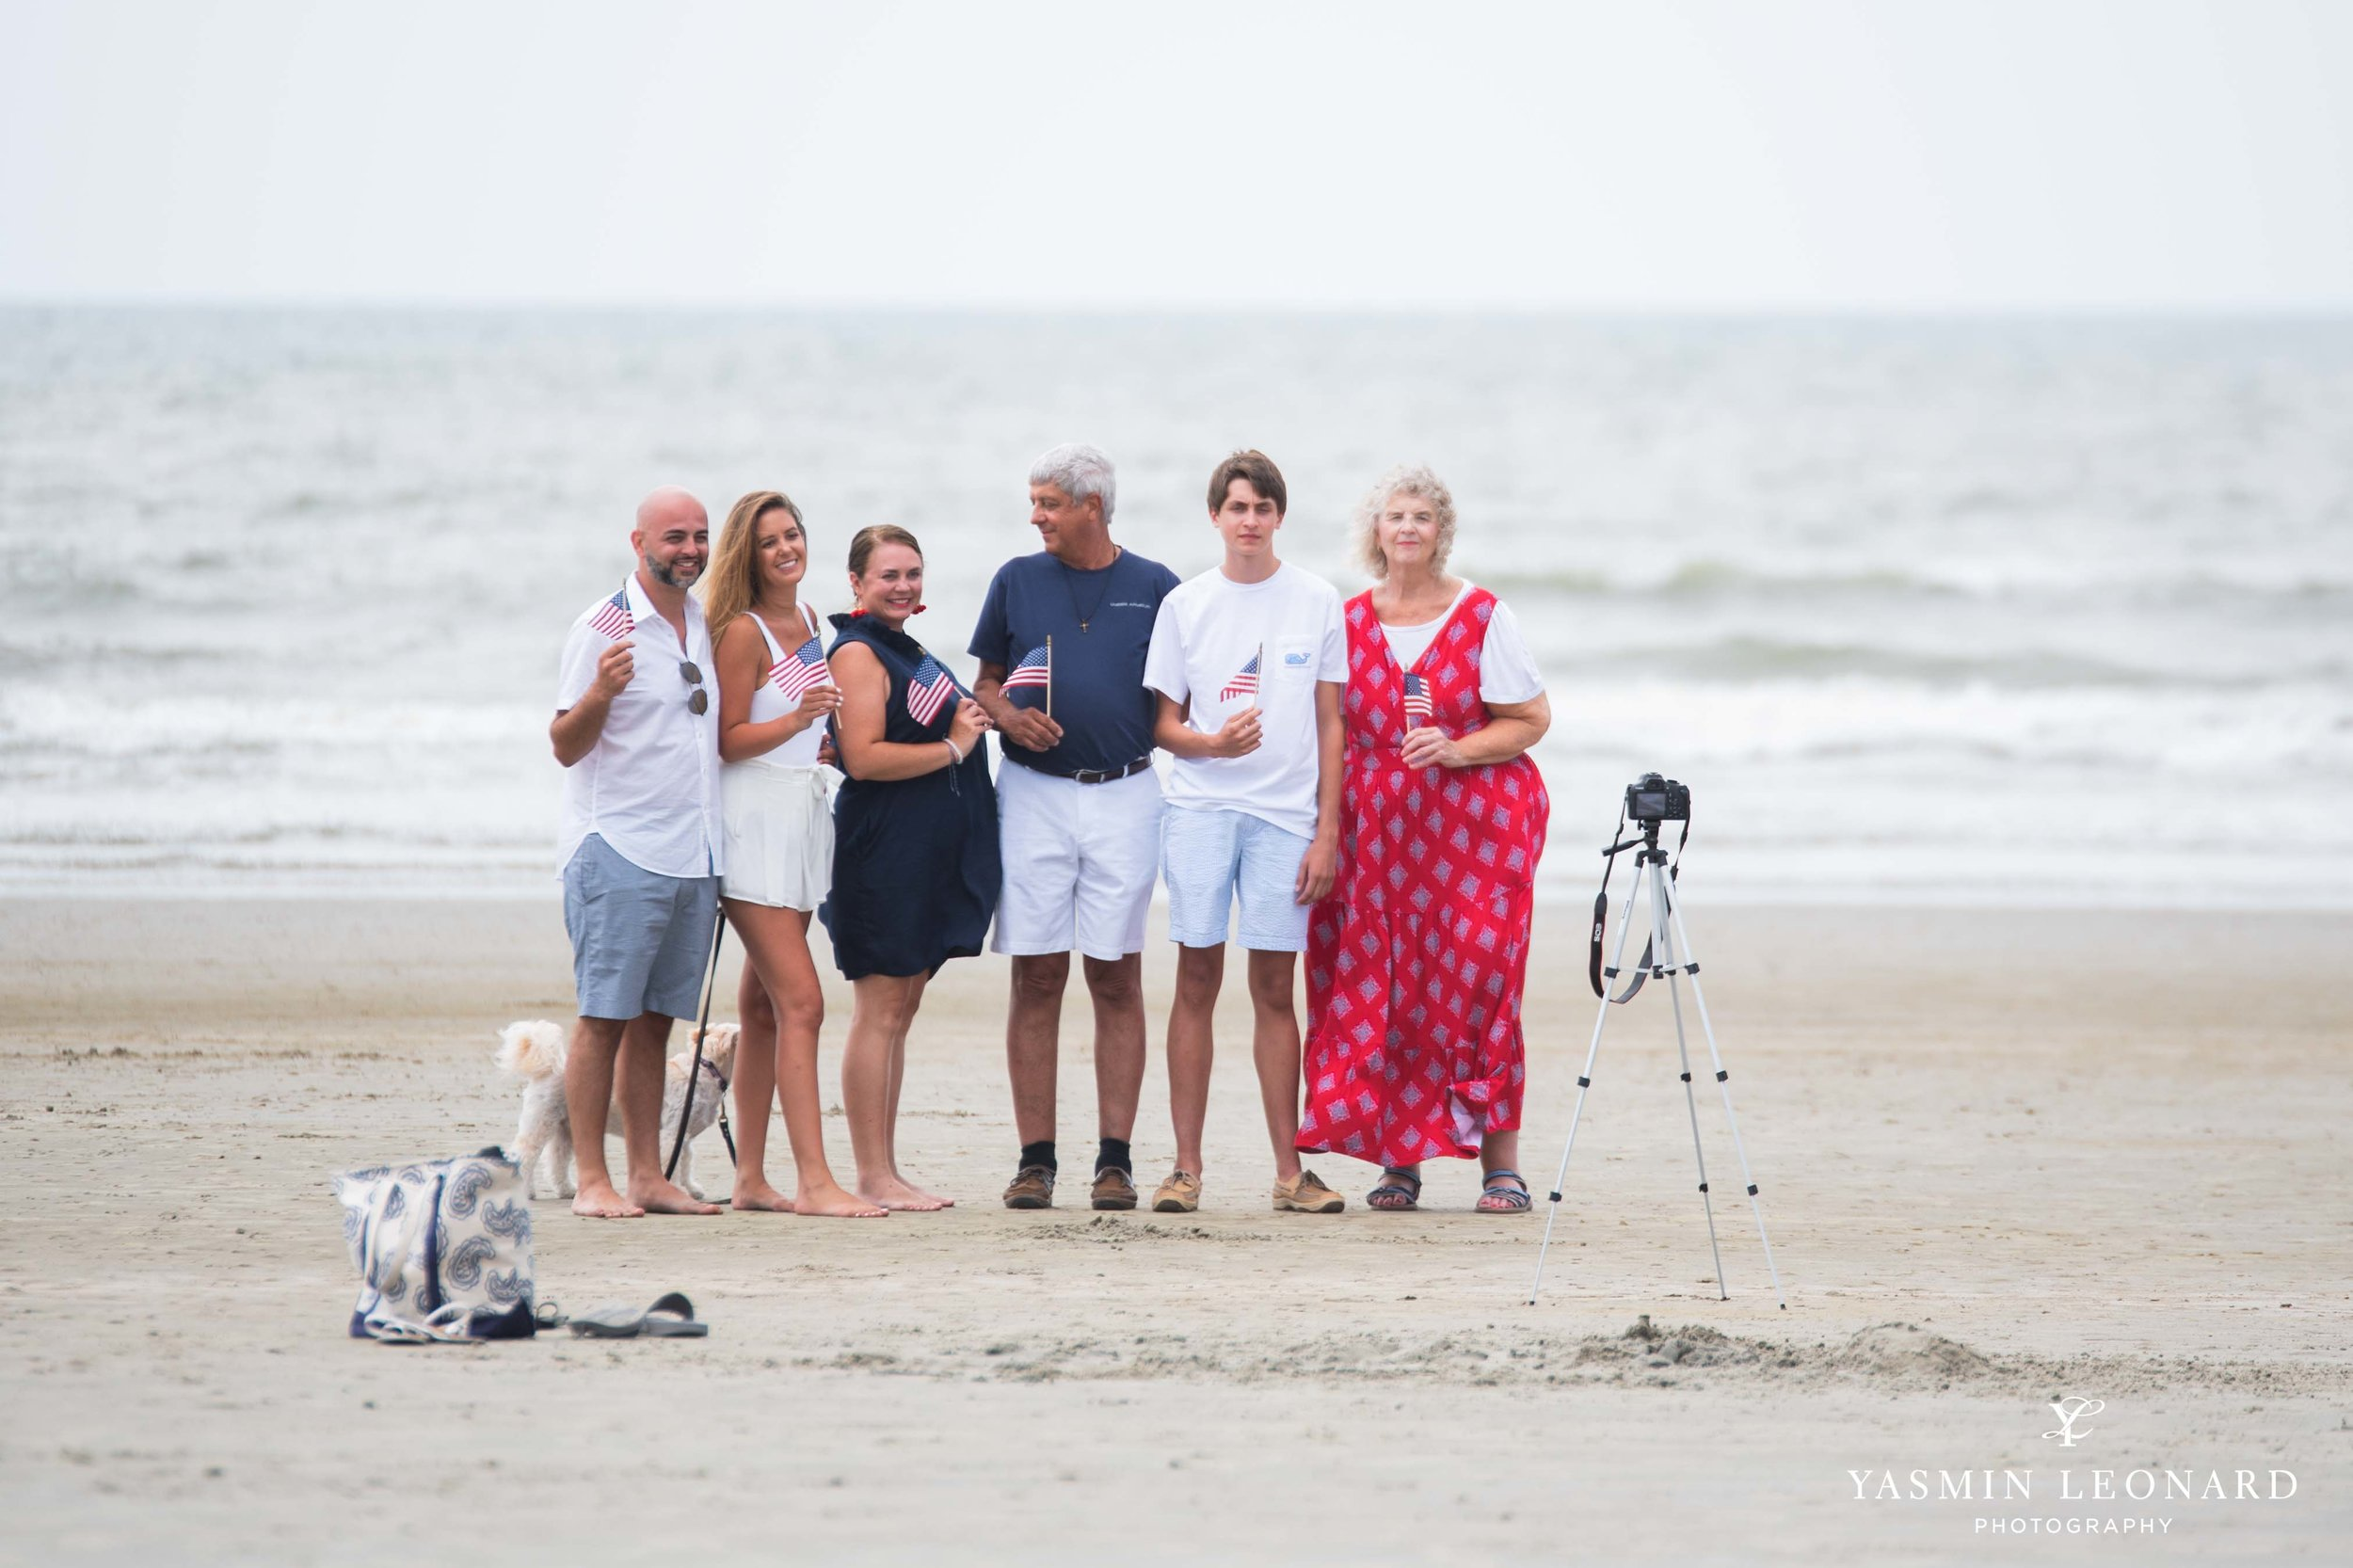 Beach Proposal - Beach Engagement Kiawah Island Photographer - NC Beach Photographer - How He Asked - NC Photographer - Proposal Ideas - Engagement Ring - Yasmin Leonard Photography-2-2.jpg